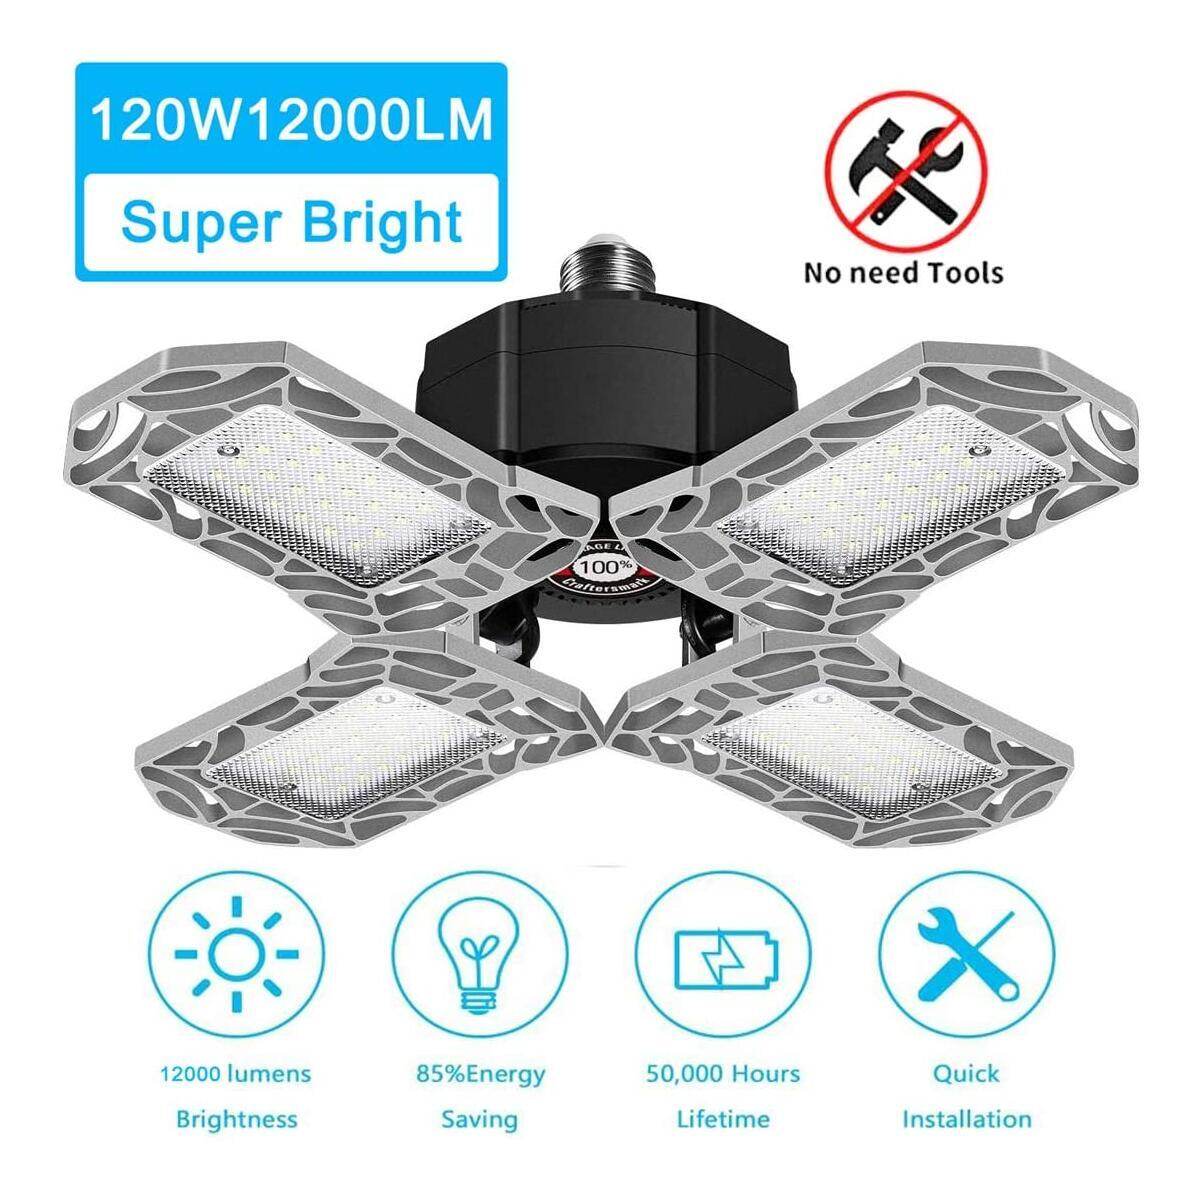 LED Garage Lights 120W, New 4 Panels 12000lm Deformable Garage Ceiling Light, 360° Retractable Quadruple Glow LED Adjustable Garage Shop Lighting Bulb E26/E27 for Garage,Barn, Warehouse,Workshop(Silver)